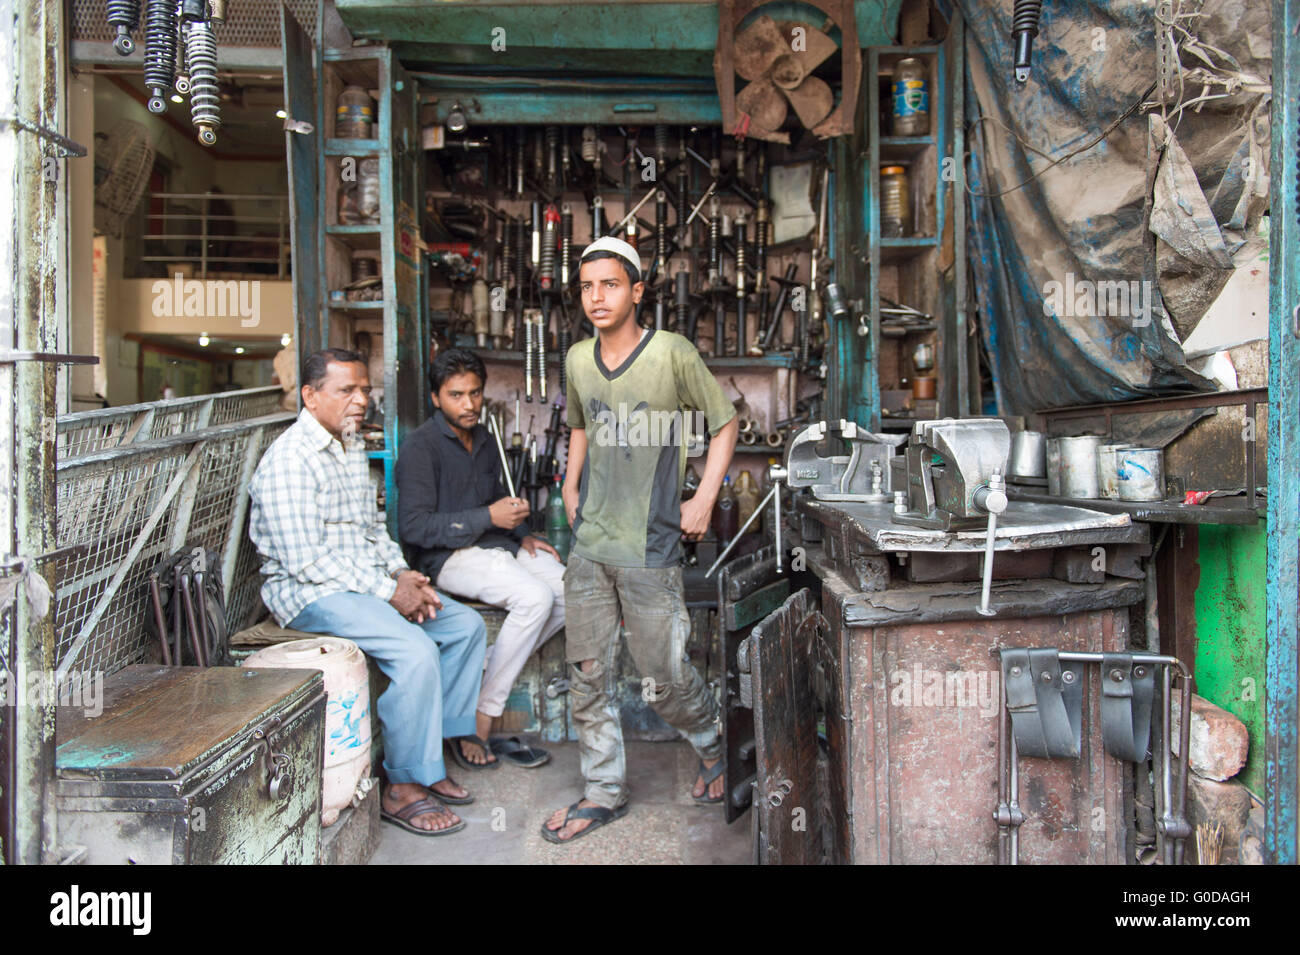 Unidentified local Indian mechanic pose for camera the street of Old Delhi in India. - Stock Image